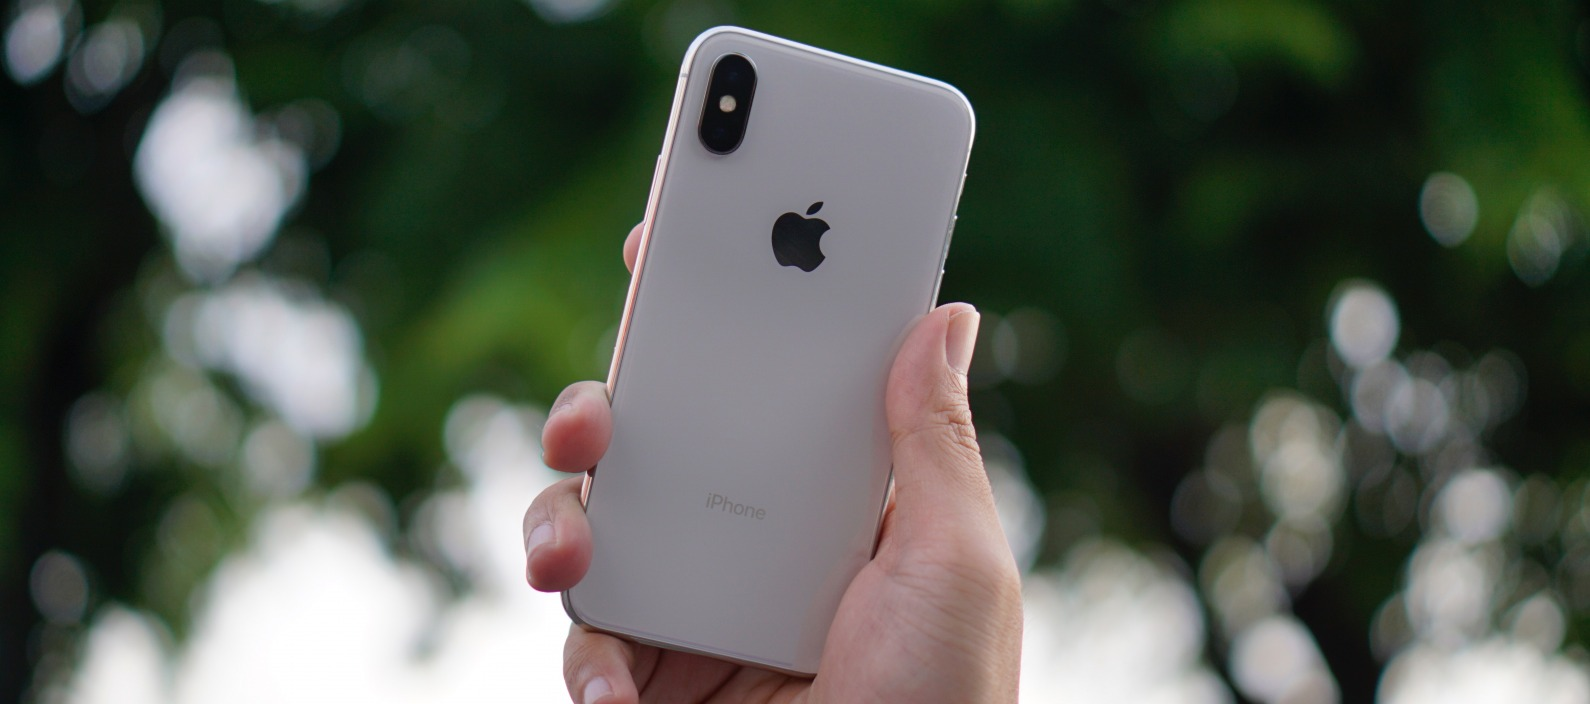 There Are Multiple Ways To Turn Off Your IPhone X. You Can Power Off Your  Device Using The Buttons, From Within The Settings App, Or You Can Perform  A Hard ...